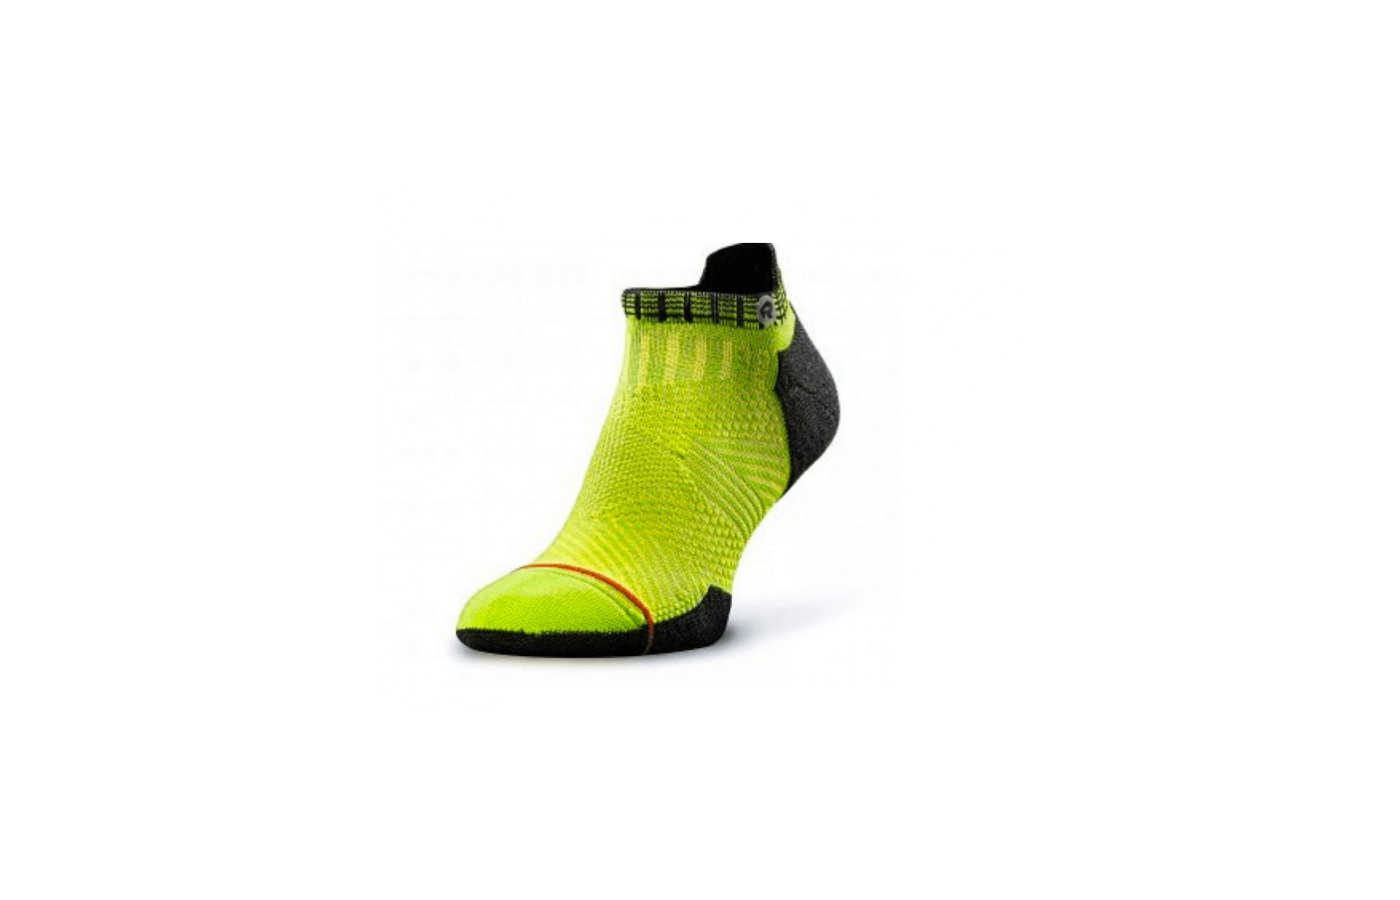 The Accelerate running socks come in four sizes and six color schemes